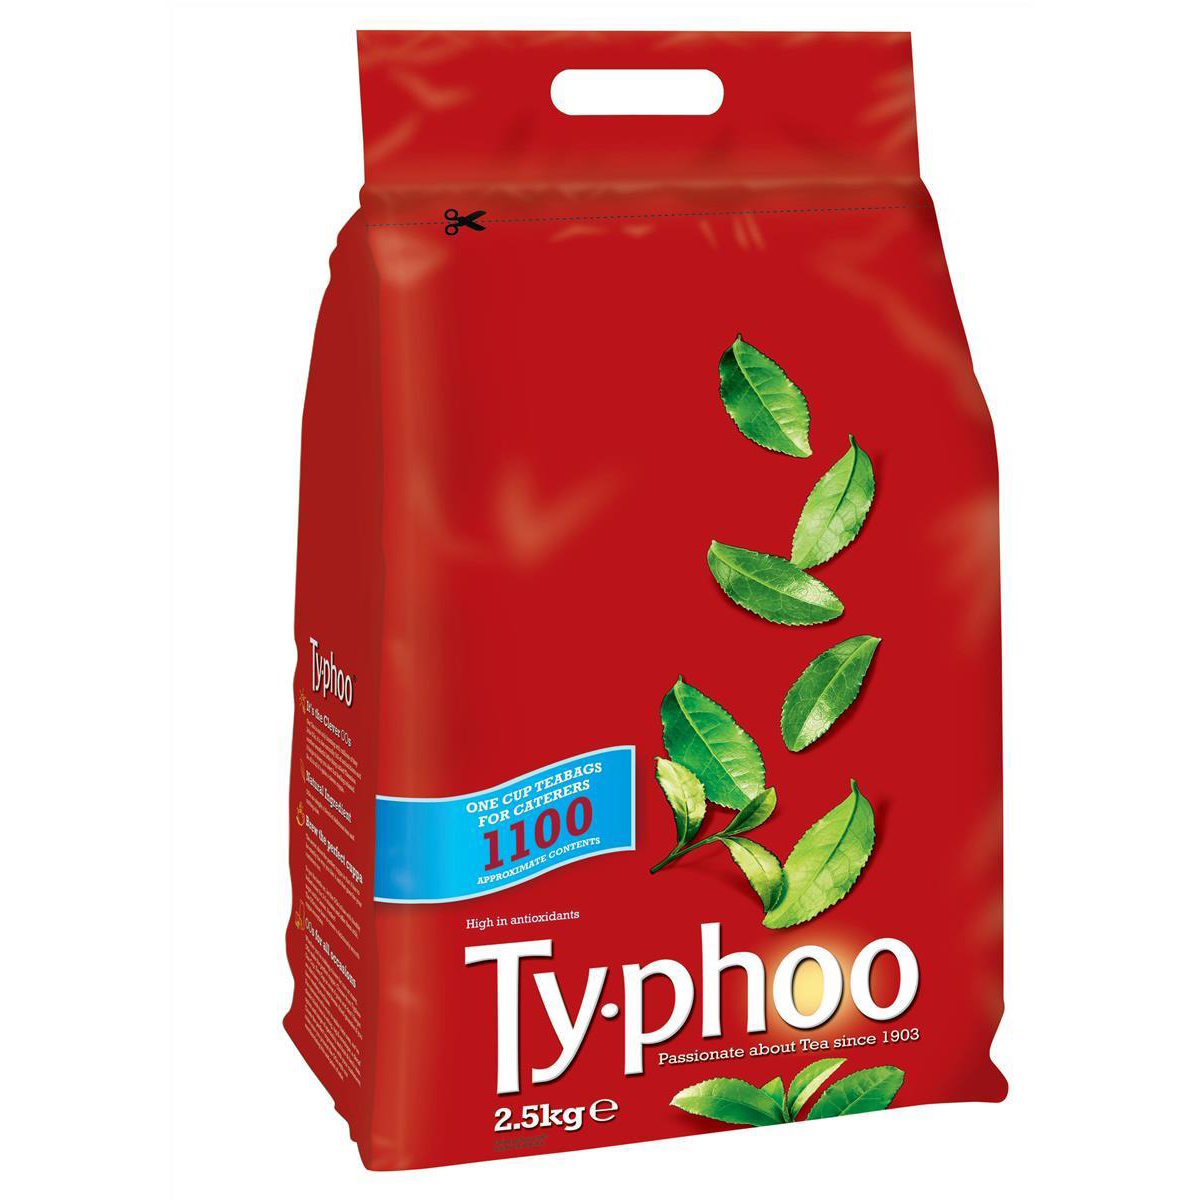 Typhoo Tea Bags Vacuum-packed 1 Cup Ref A00786 Pack 1100